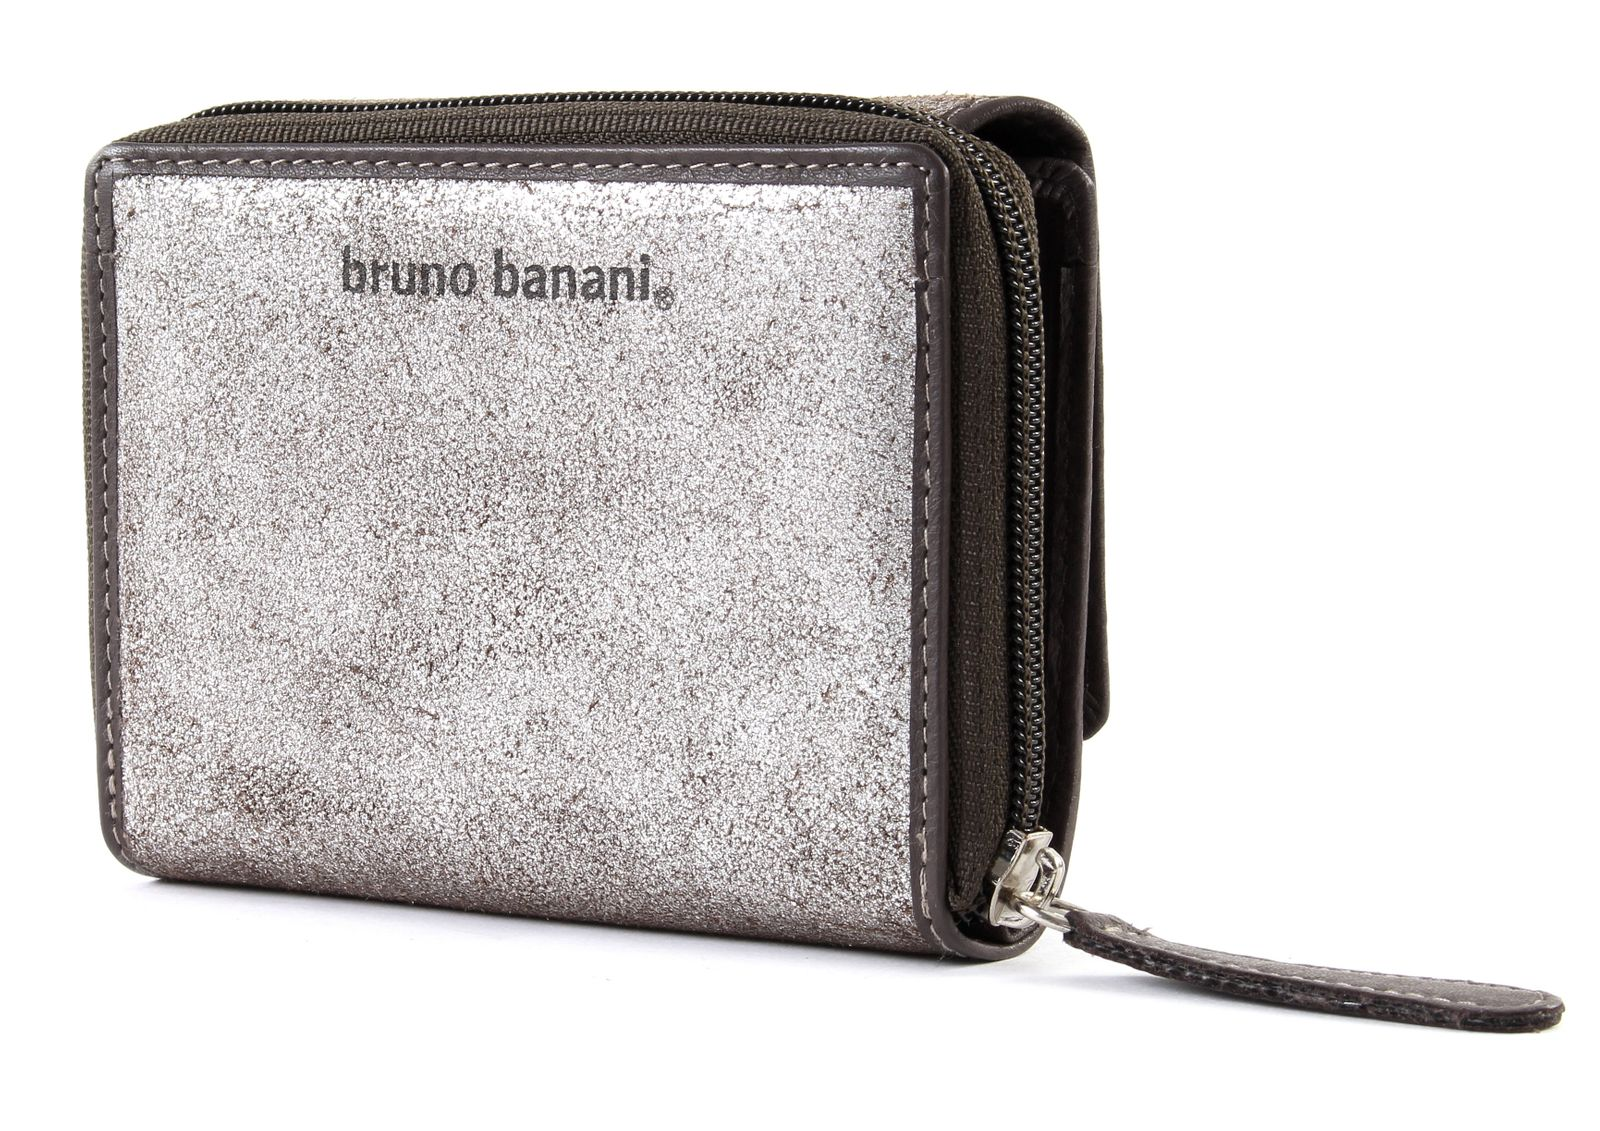 separation shoes 0a94a 481a3 bruno banani Glamour Wallet Taupe Metallic